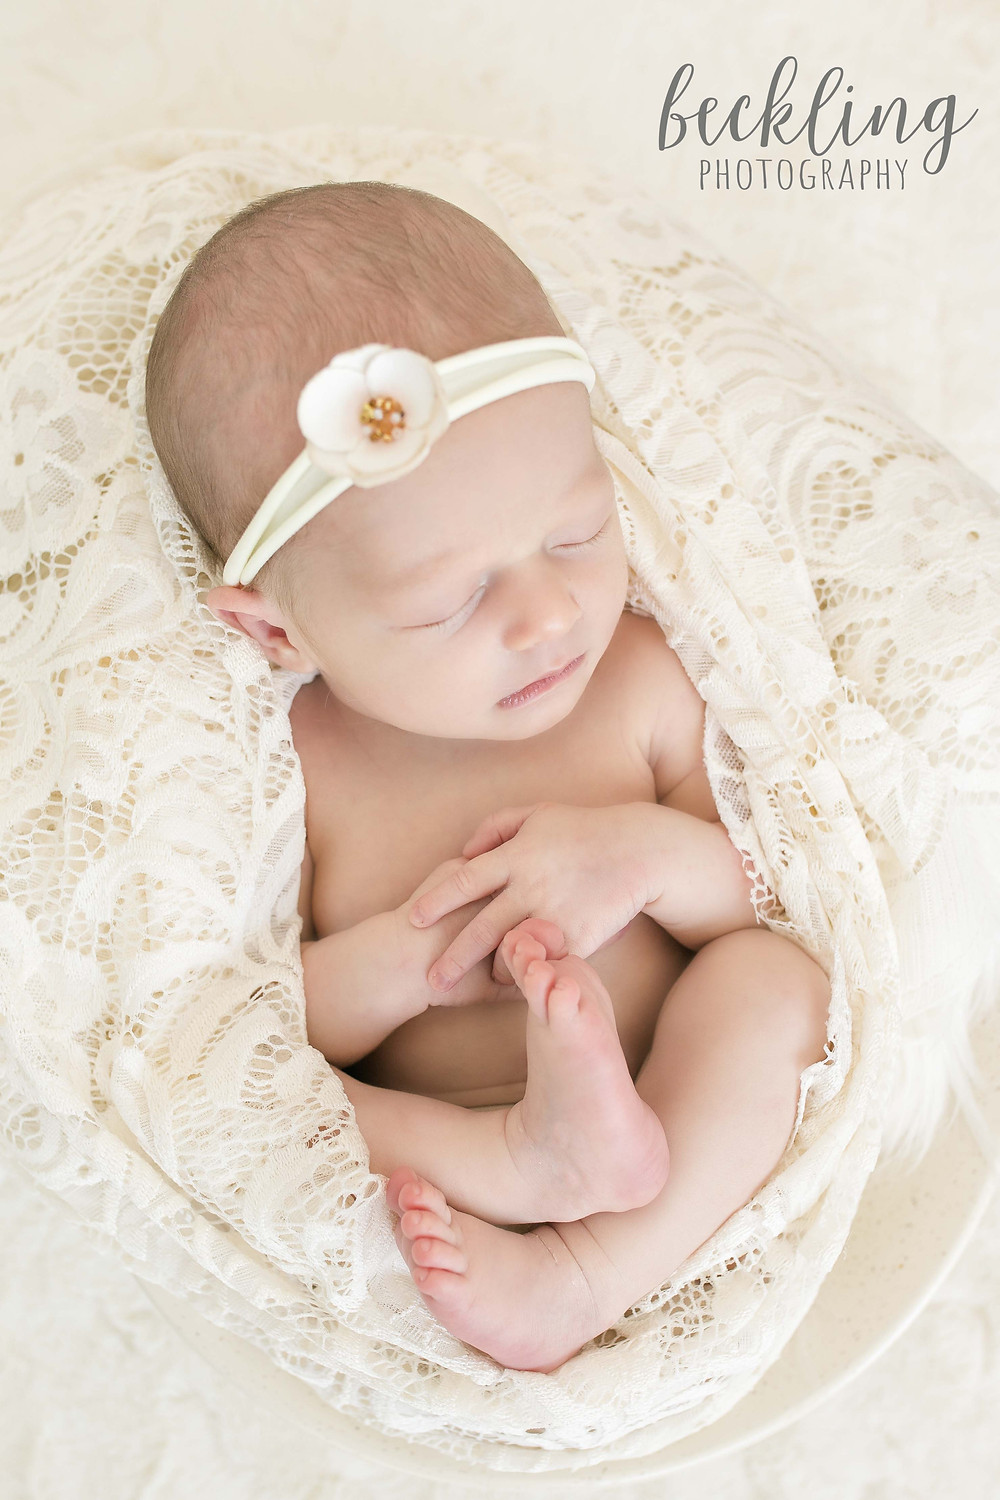 Beckling Photography | Savannah Newborn Photographer | Newborn girl with ivory lace wrap and flower headband